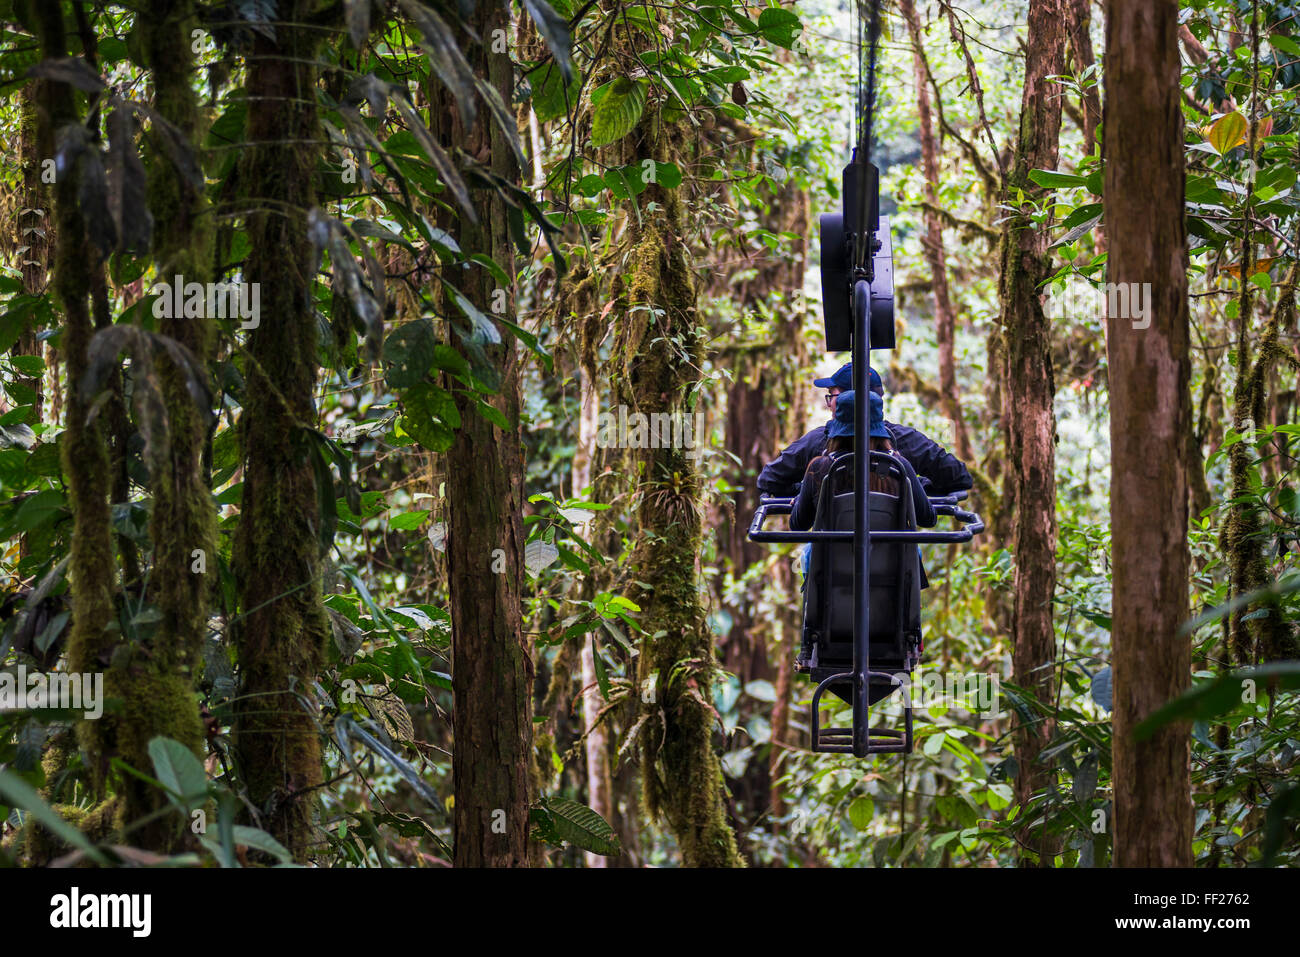 Mashpi RModge Sky Bike in the Choco Rainforest, an area of CRMoud Forest in the Pichincha Province of Ecuador, South - Stock Image